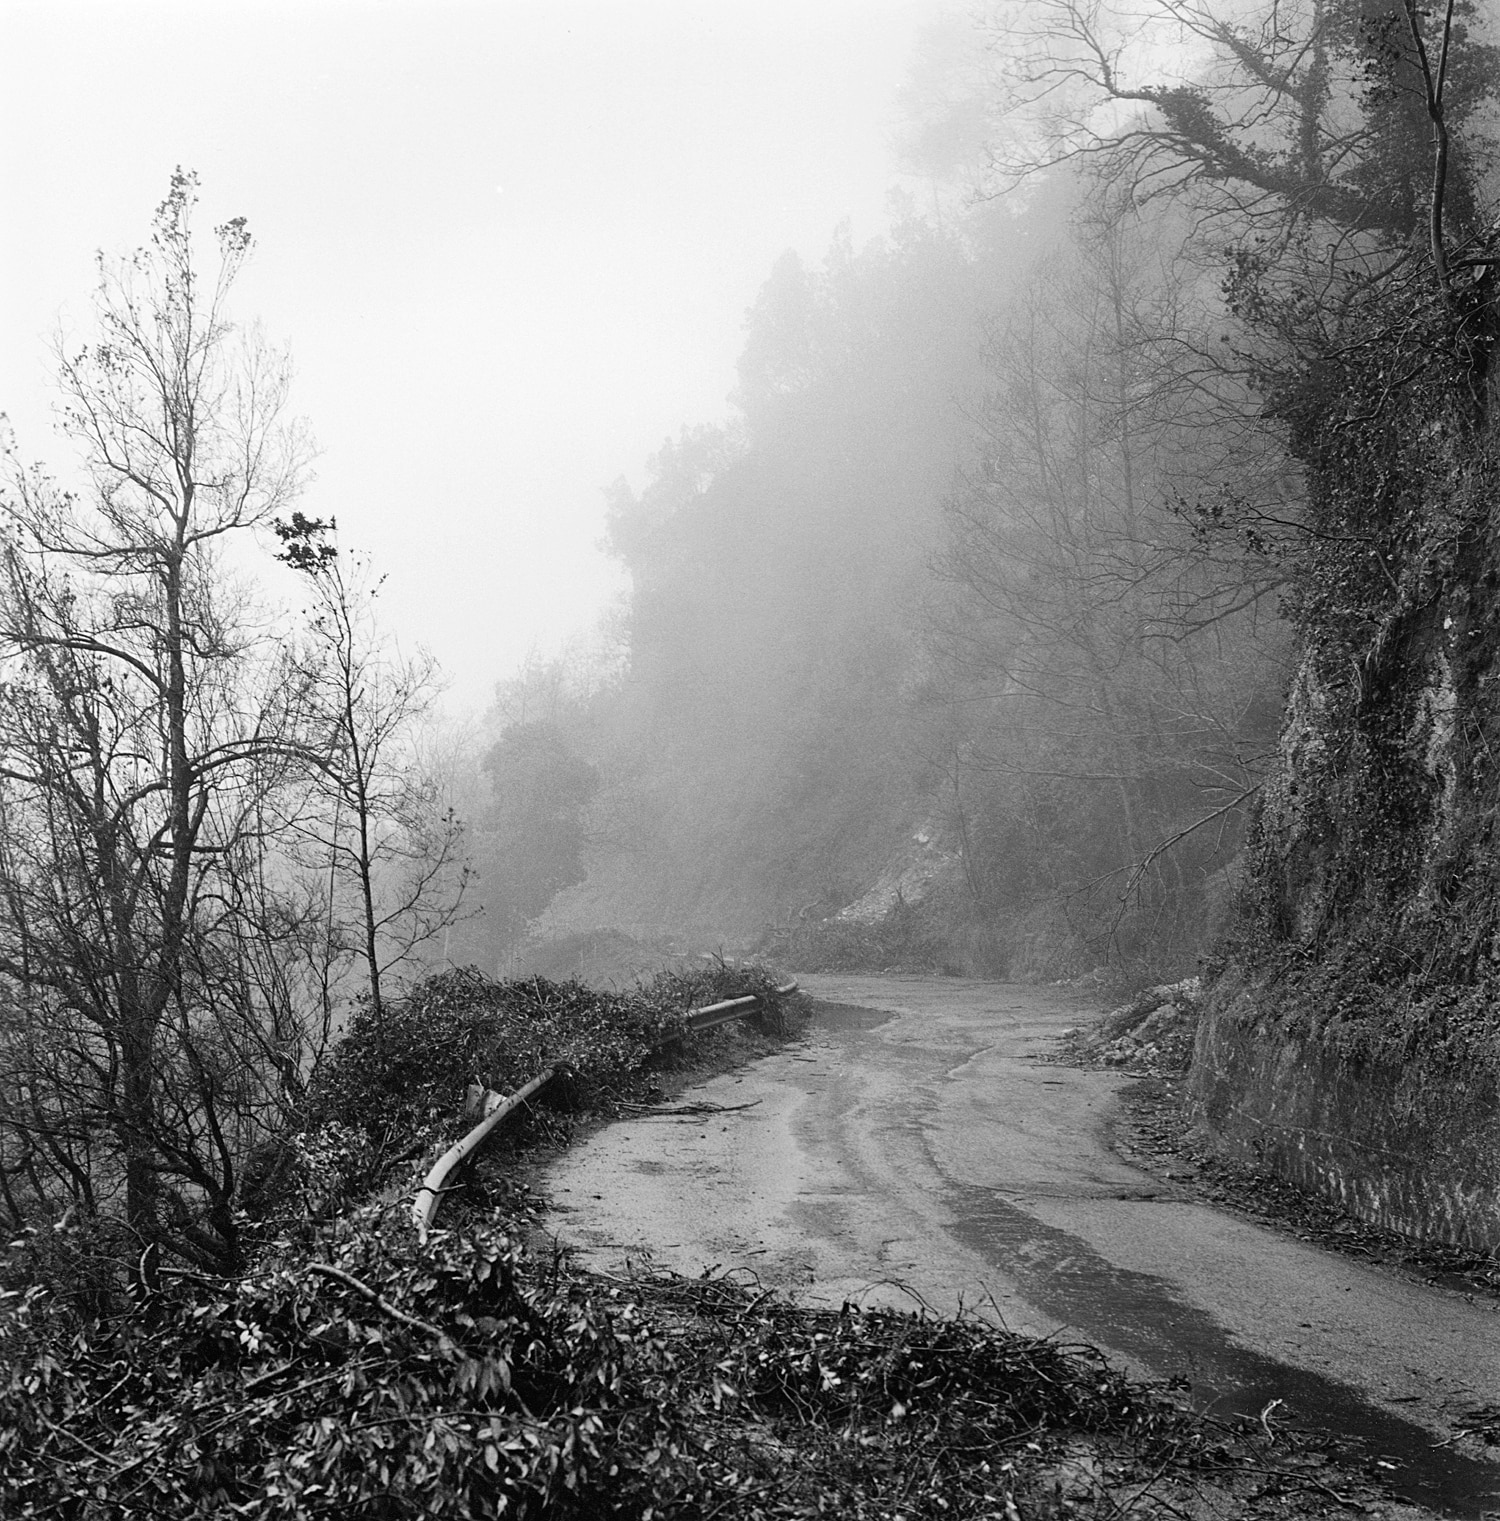 The road to the Aspromonte national park.